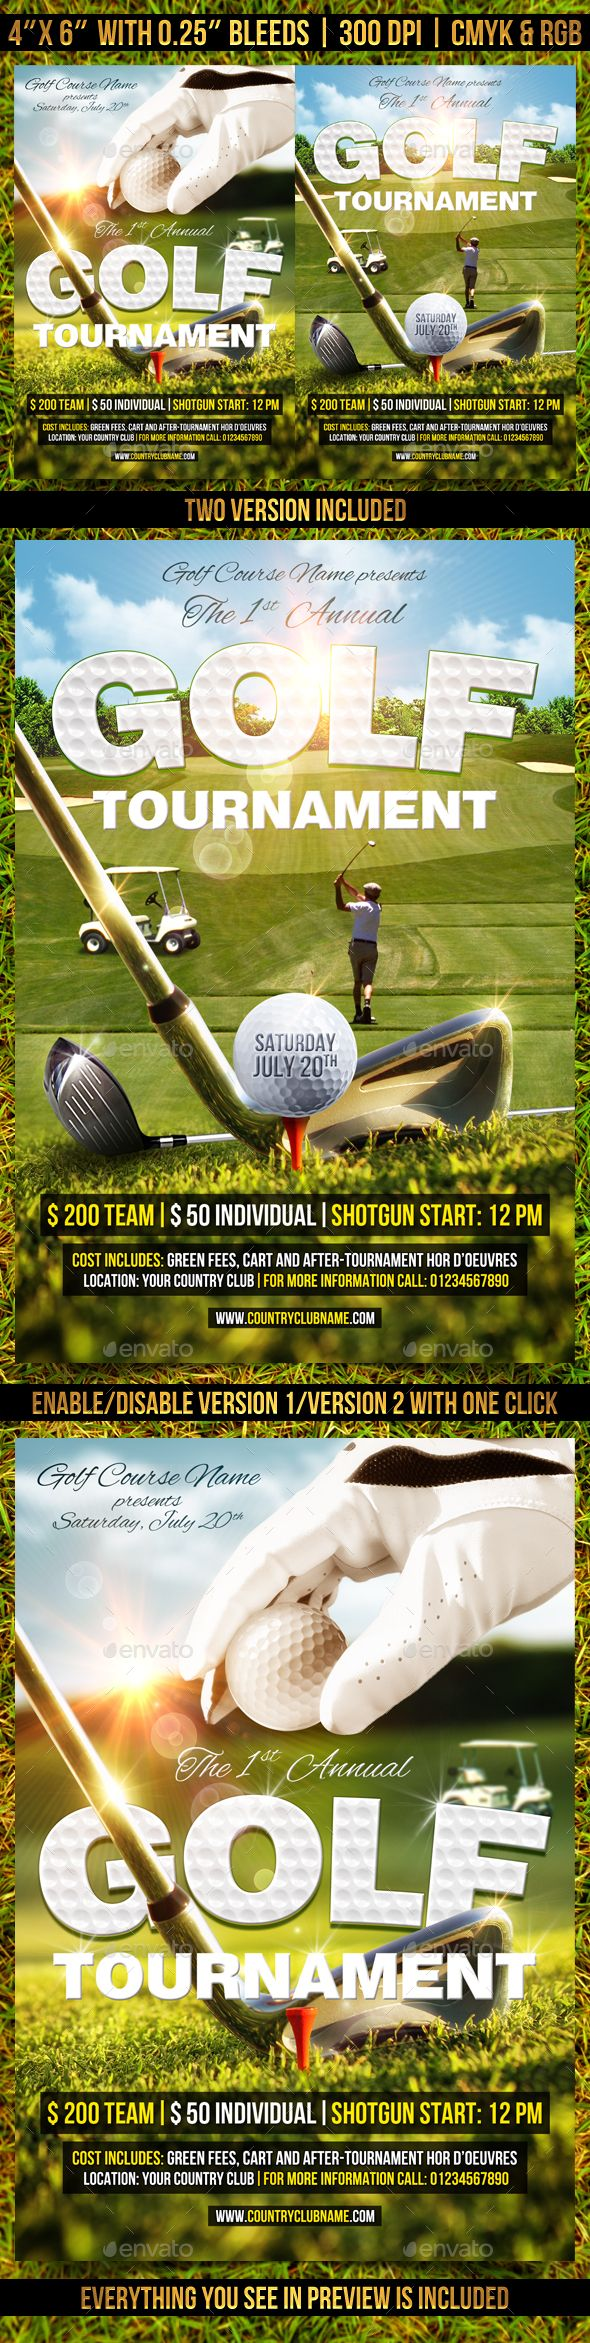 Best Cisd Golf Tournament Images On   Event Flyers